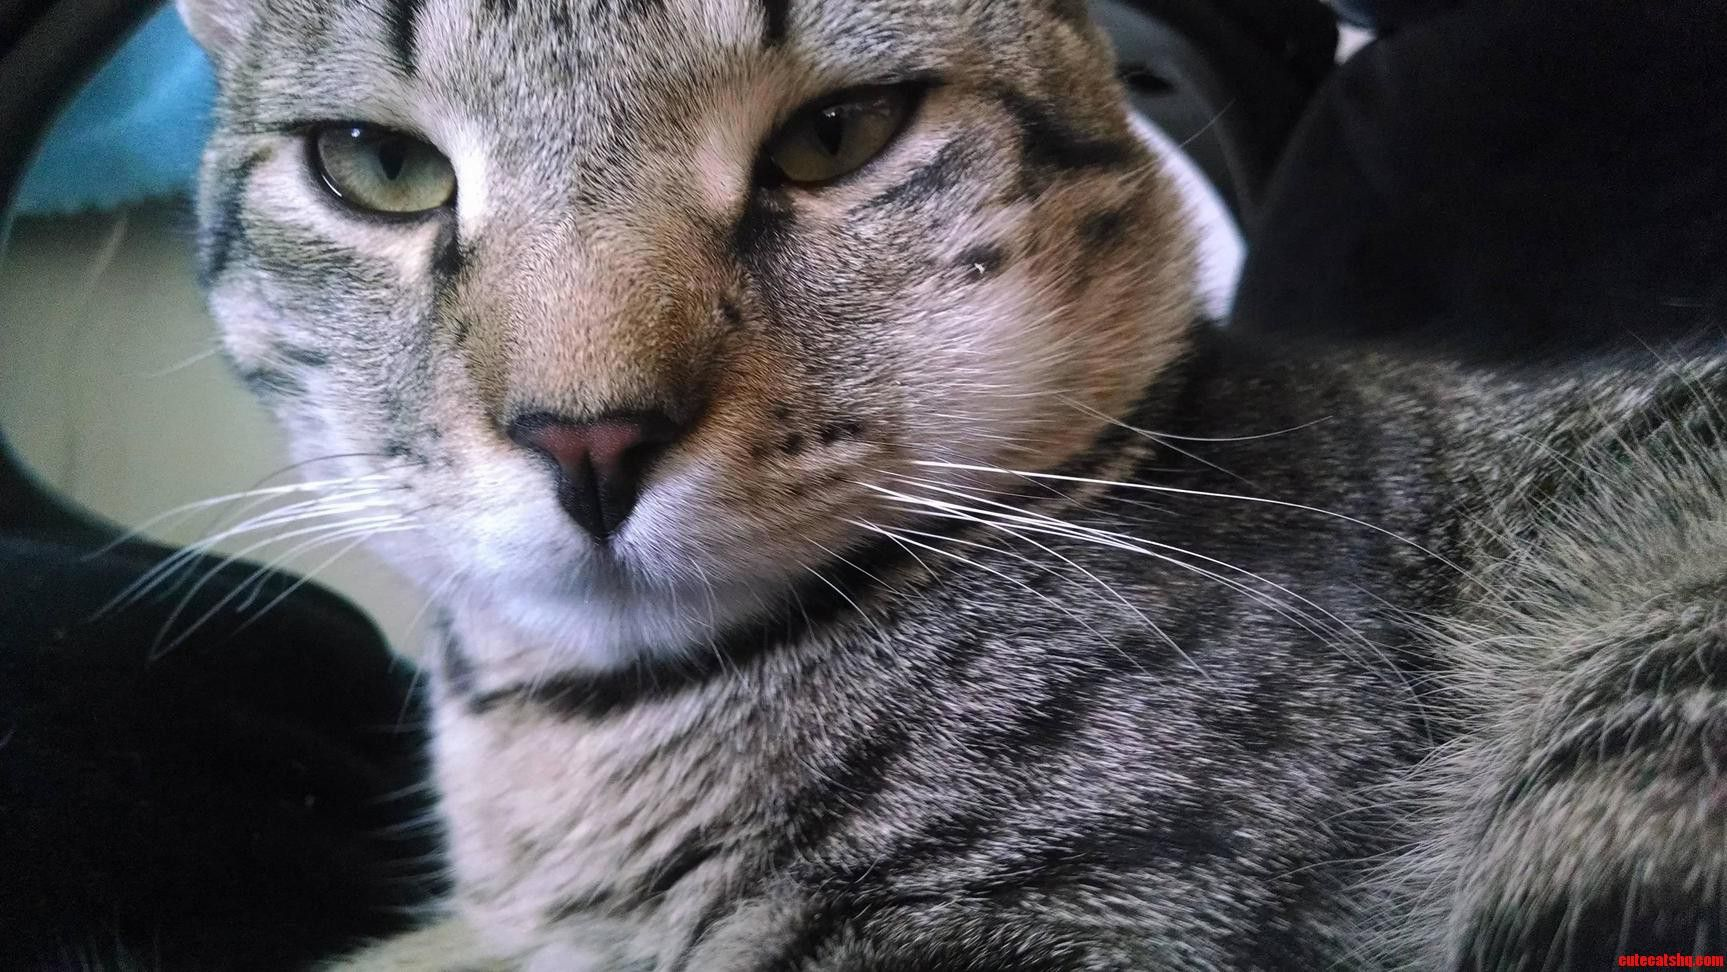 Link Got Stung By A Bee Too. Cute cats, kittens, Cute